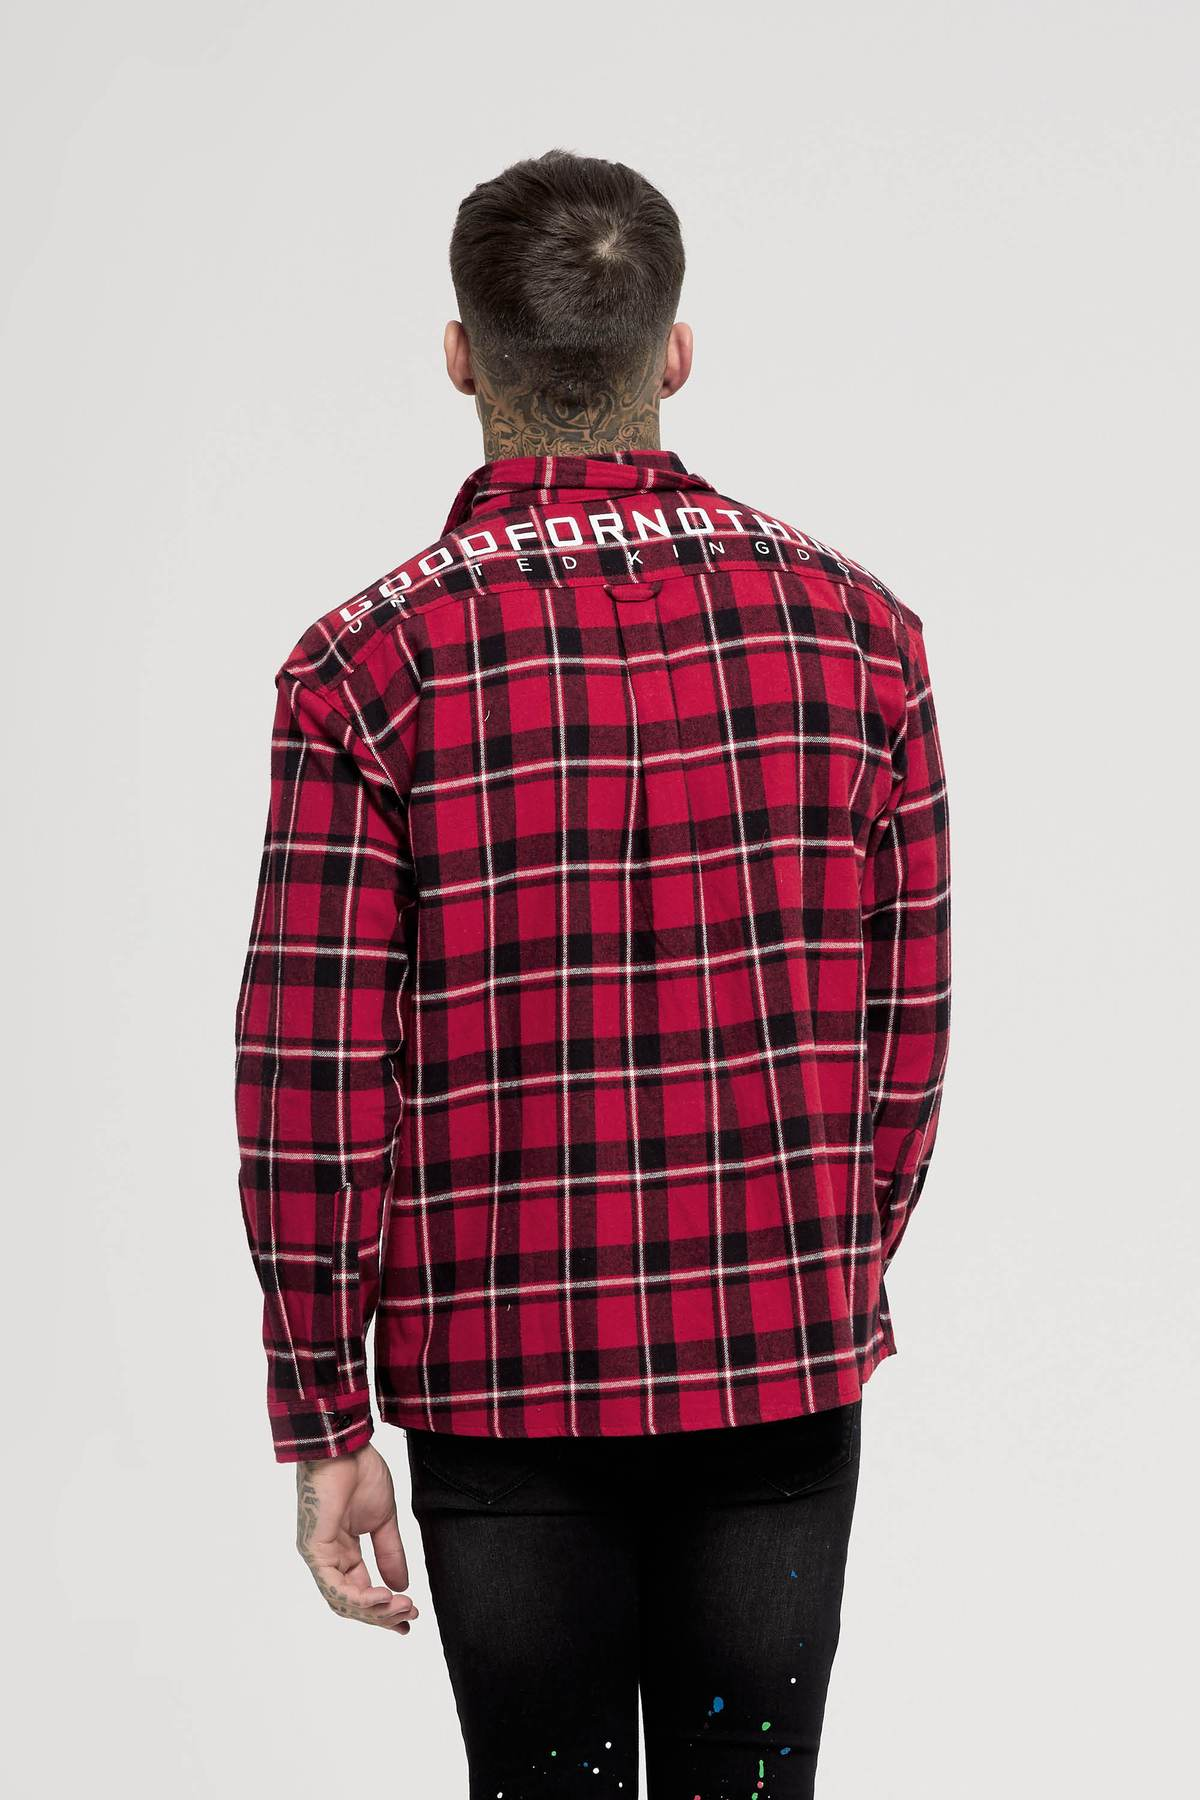 Oversized Red Check Shirt Back View Buy Good For Nothing available in store USA Fresh Clothing DC Washington DC